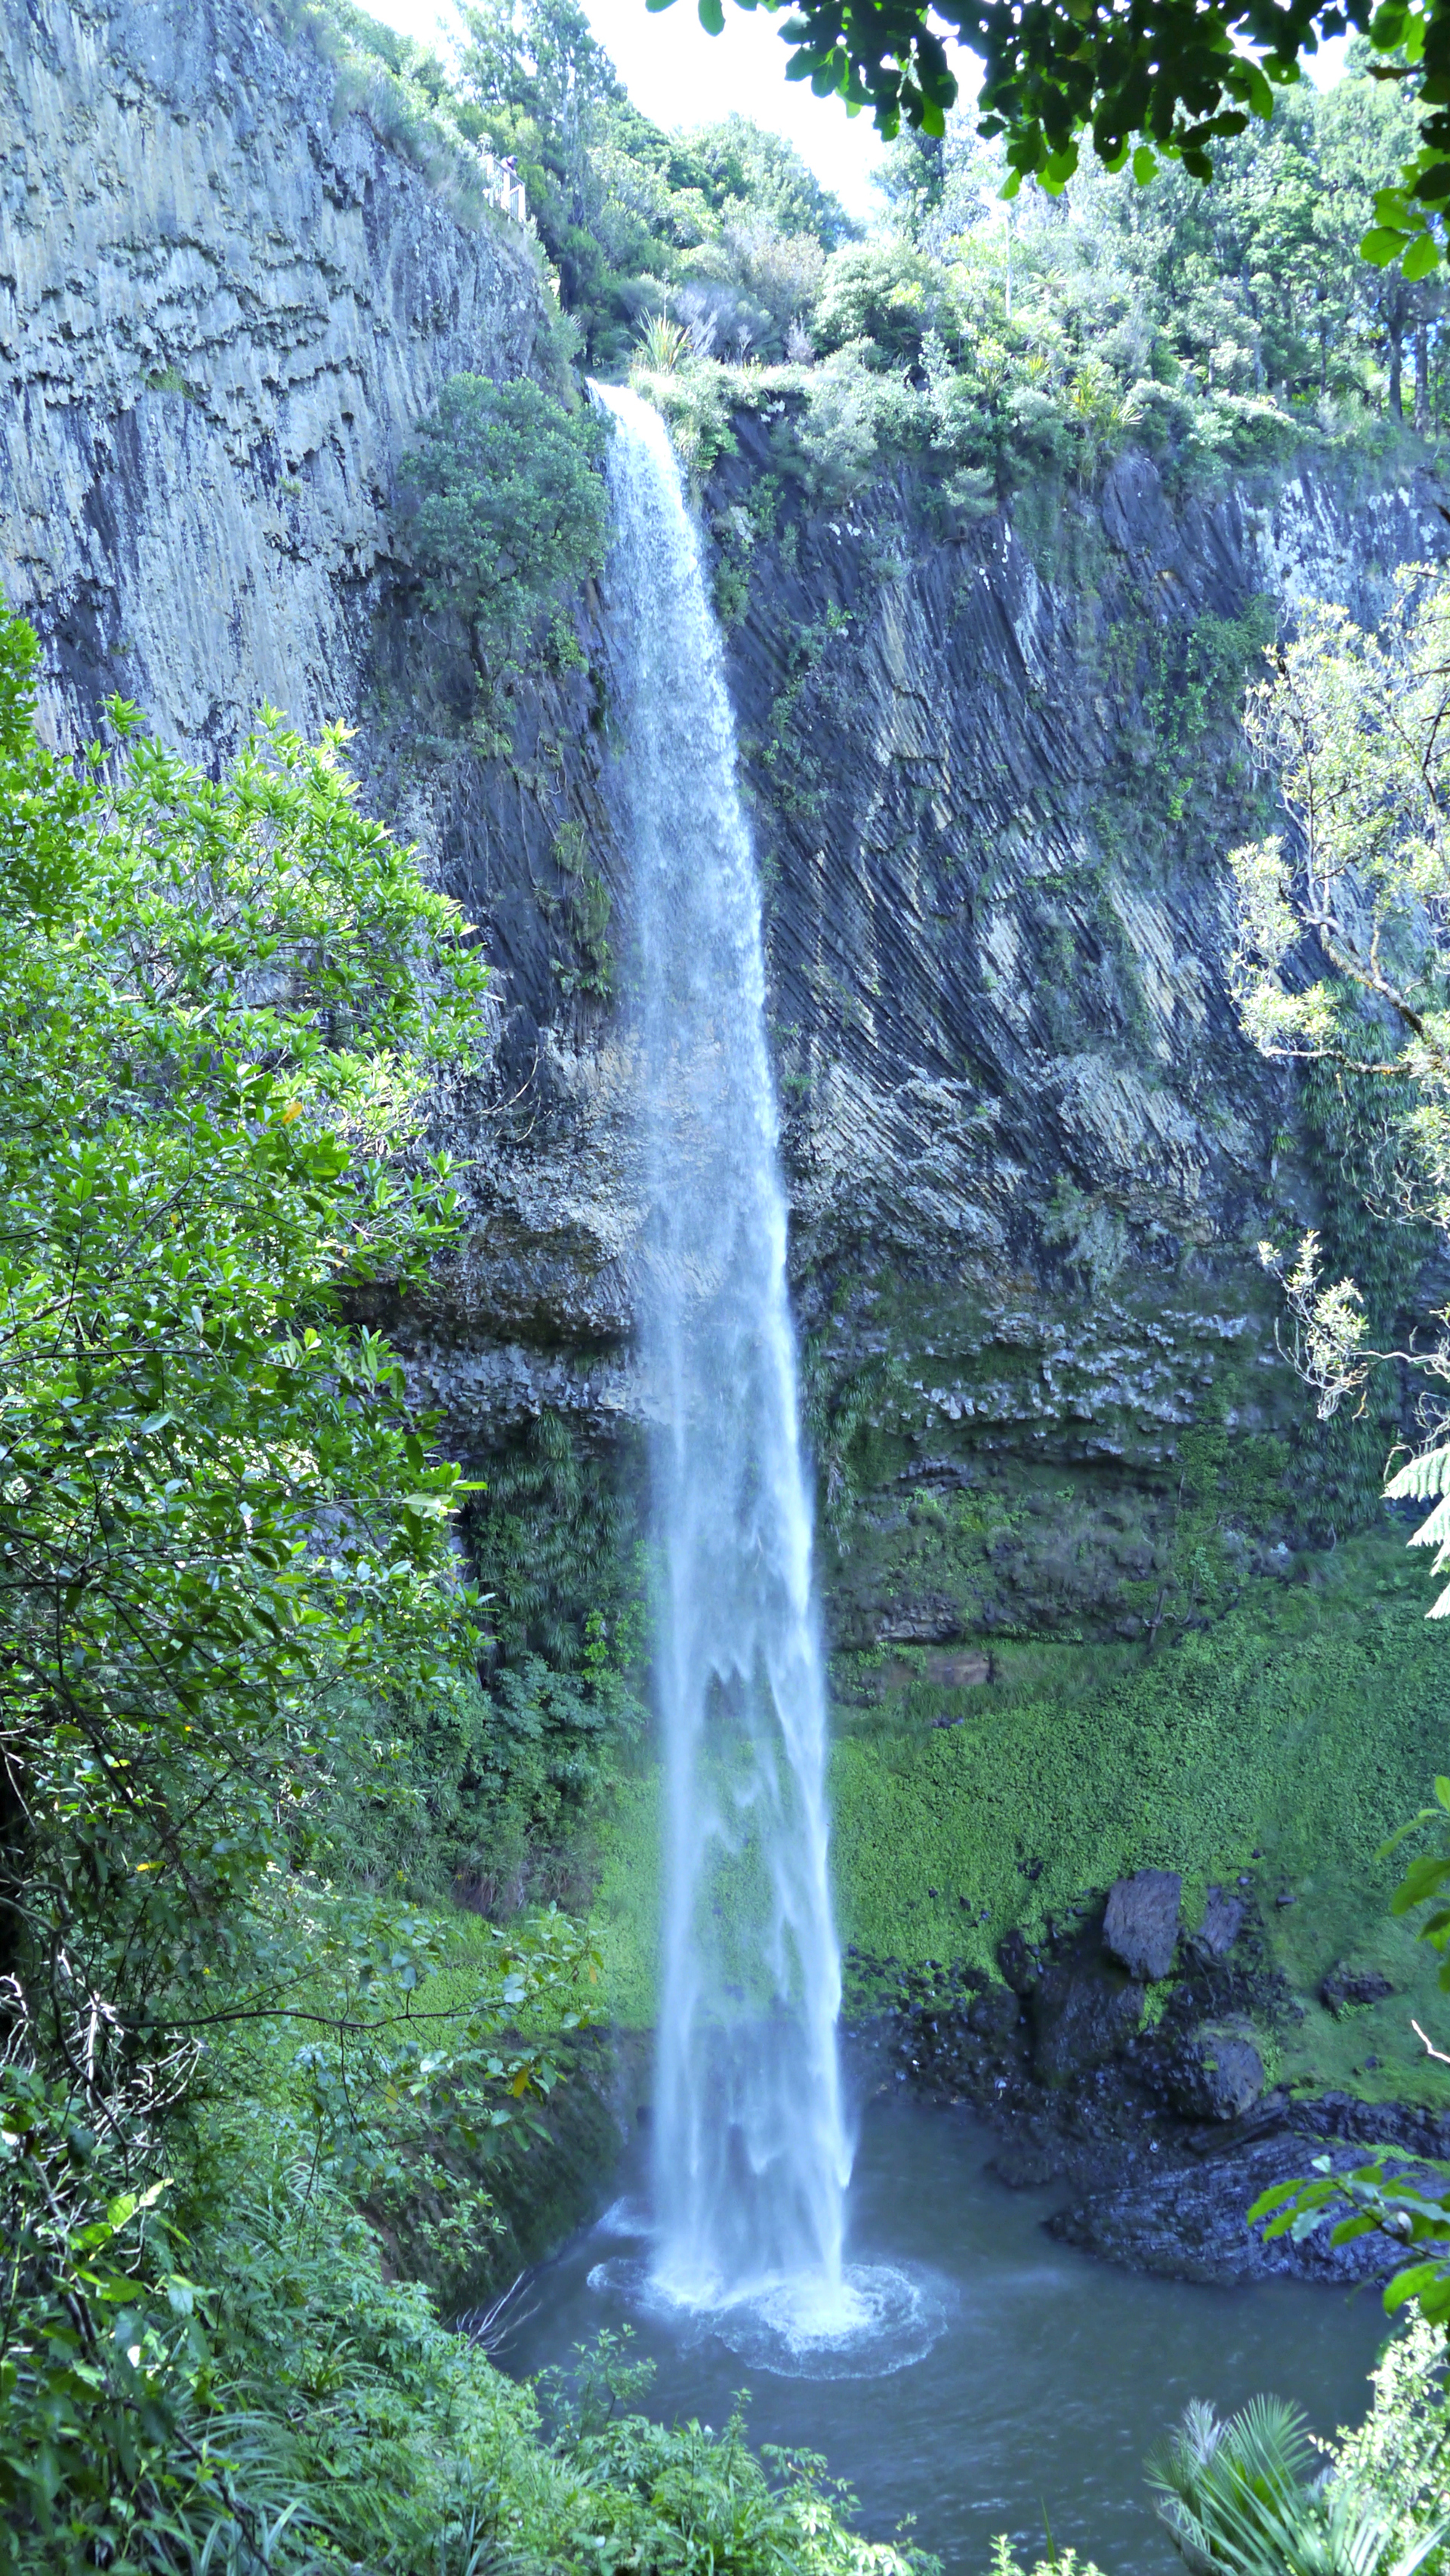 Bridal Veil Falls. Raglan, New Zealand